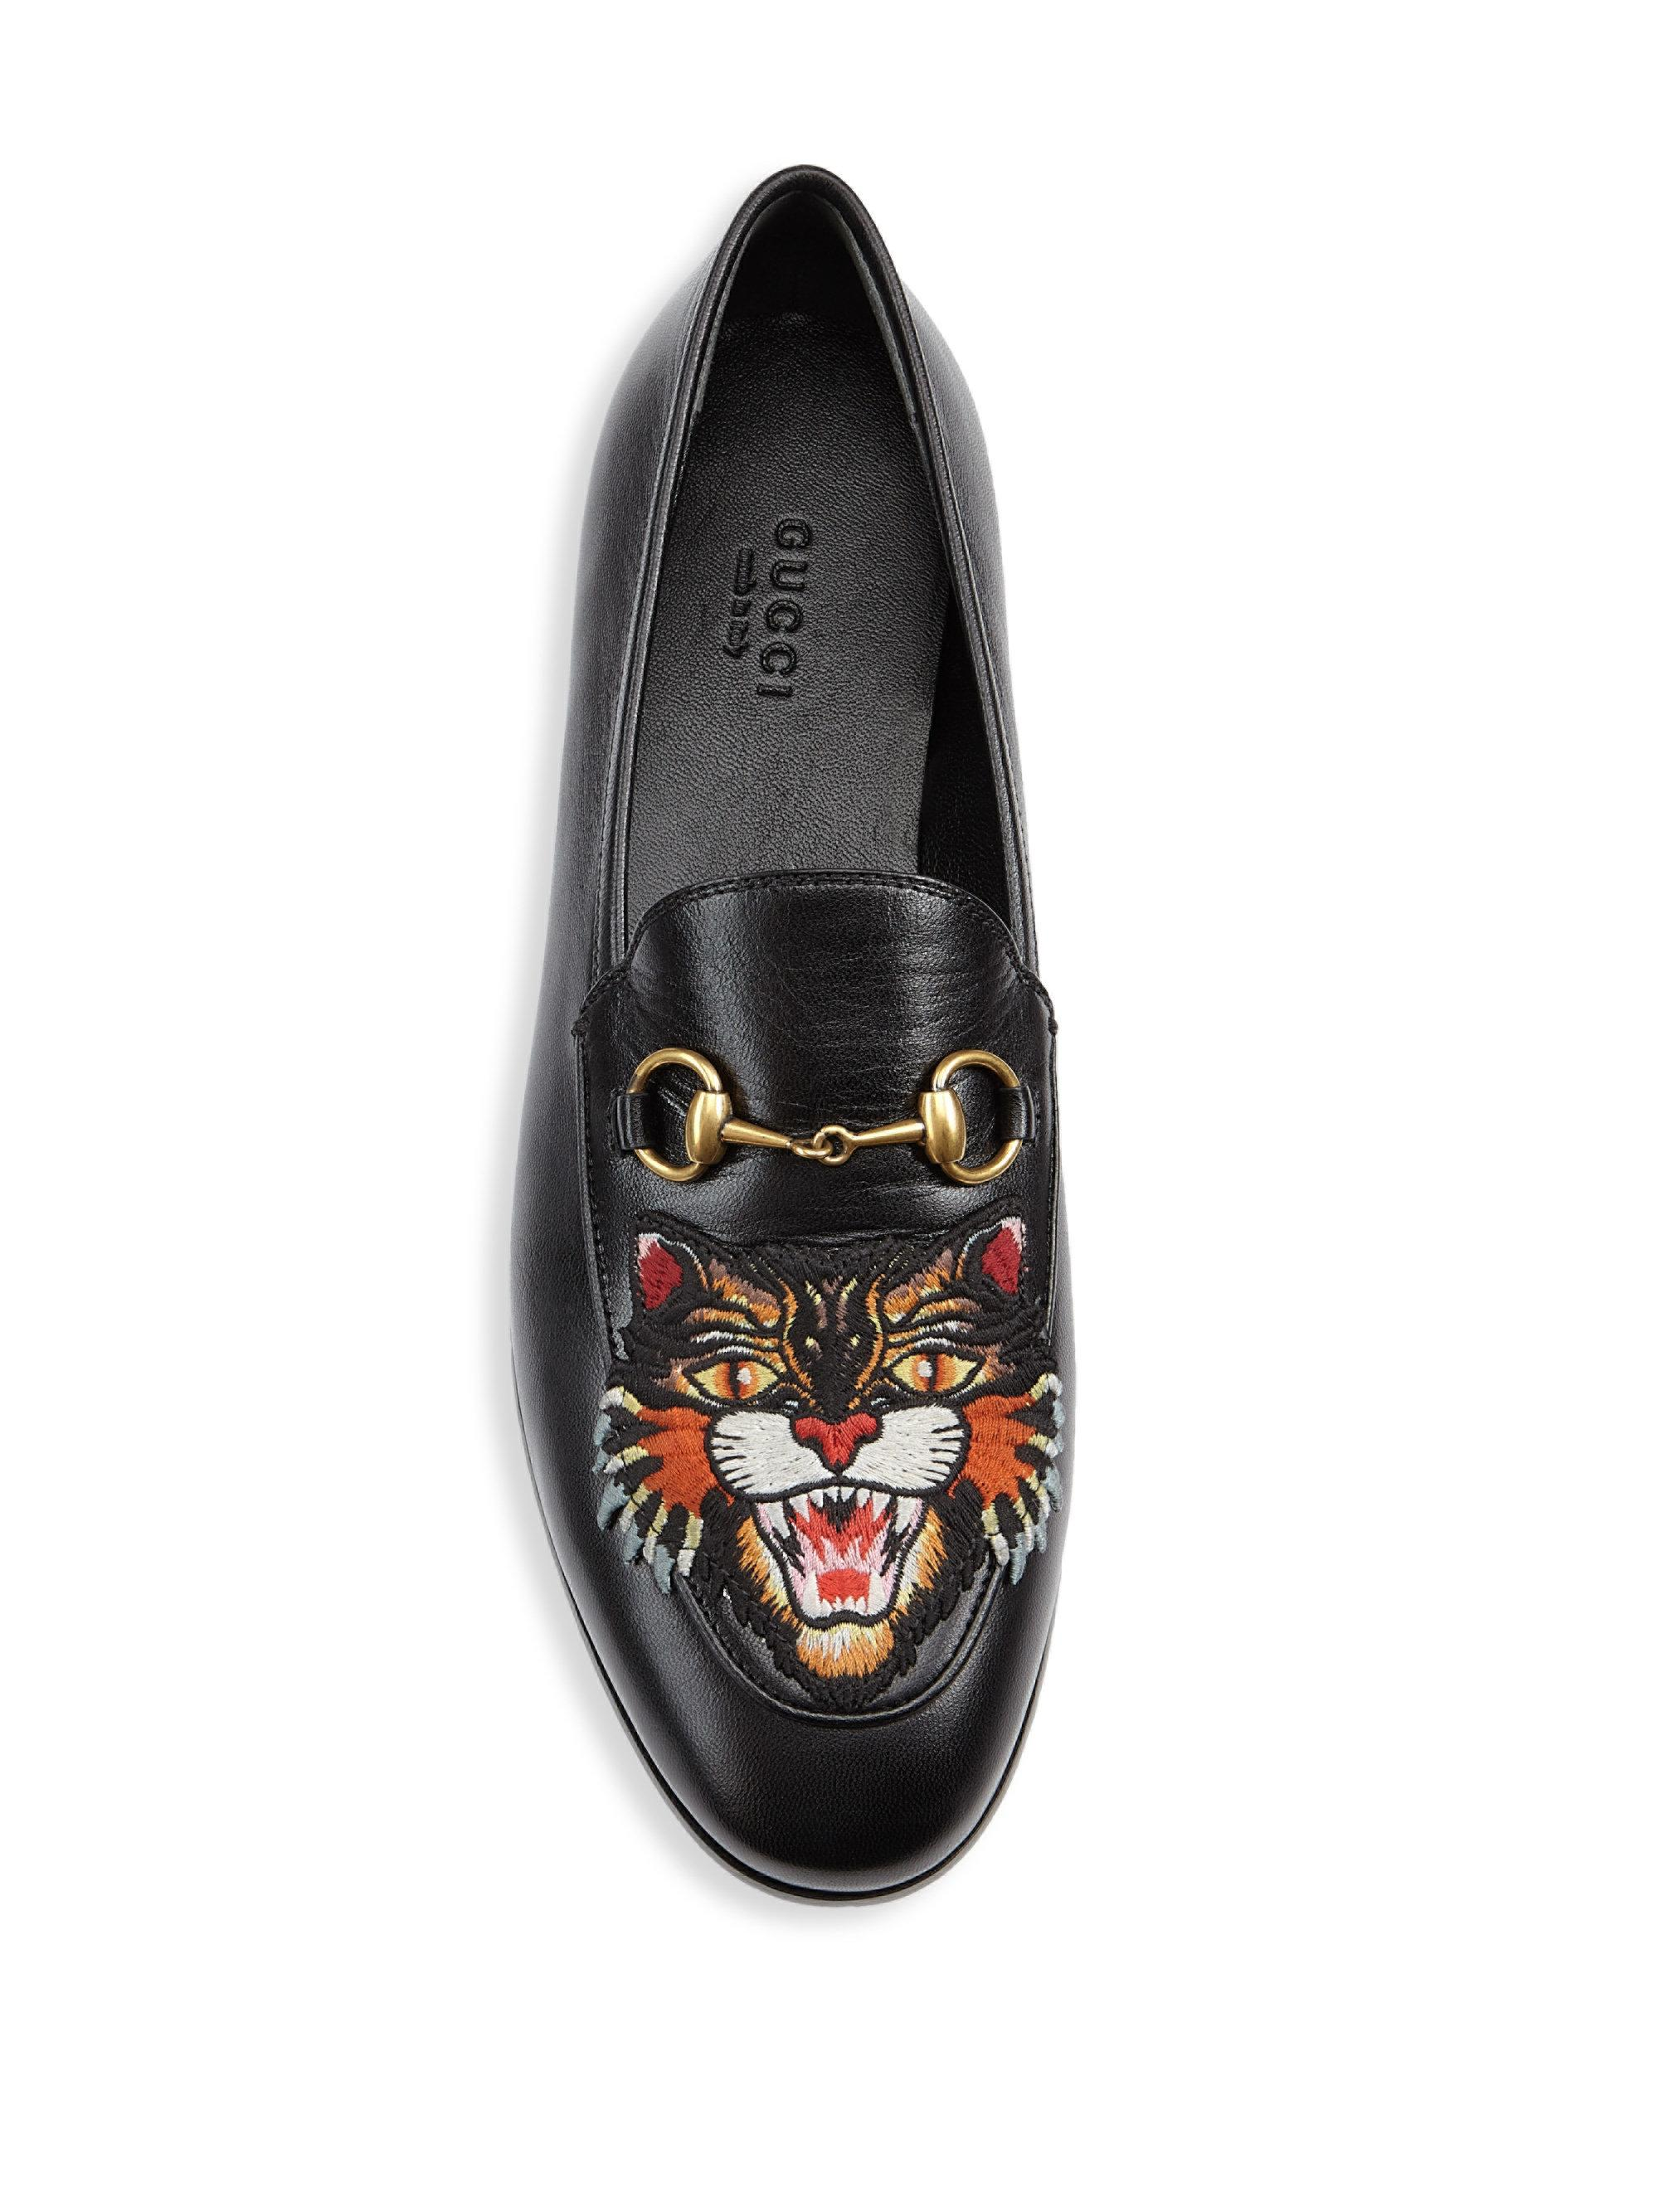 059a9252ee9 Lyst - Gucci Jordaan Leather Loafers With Angry Cat in Black